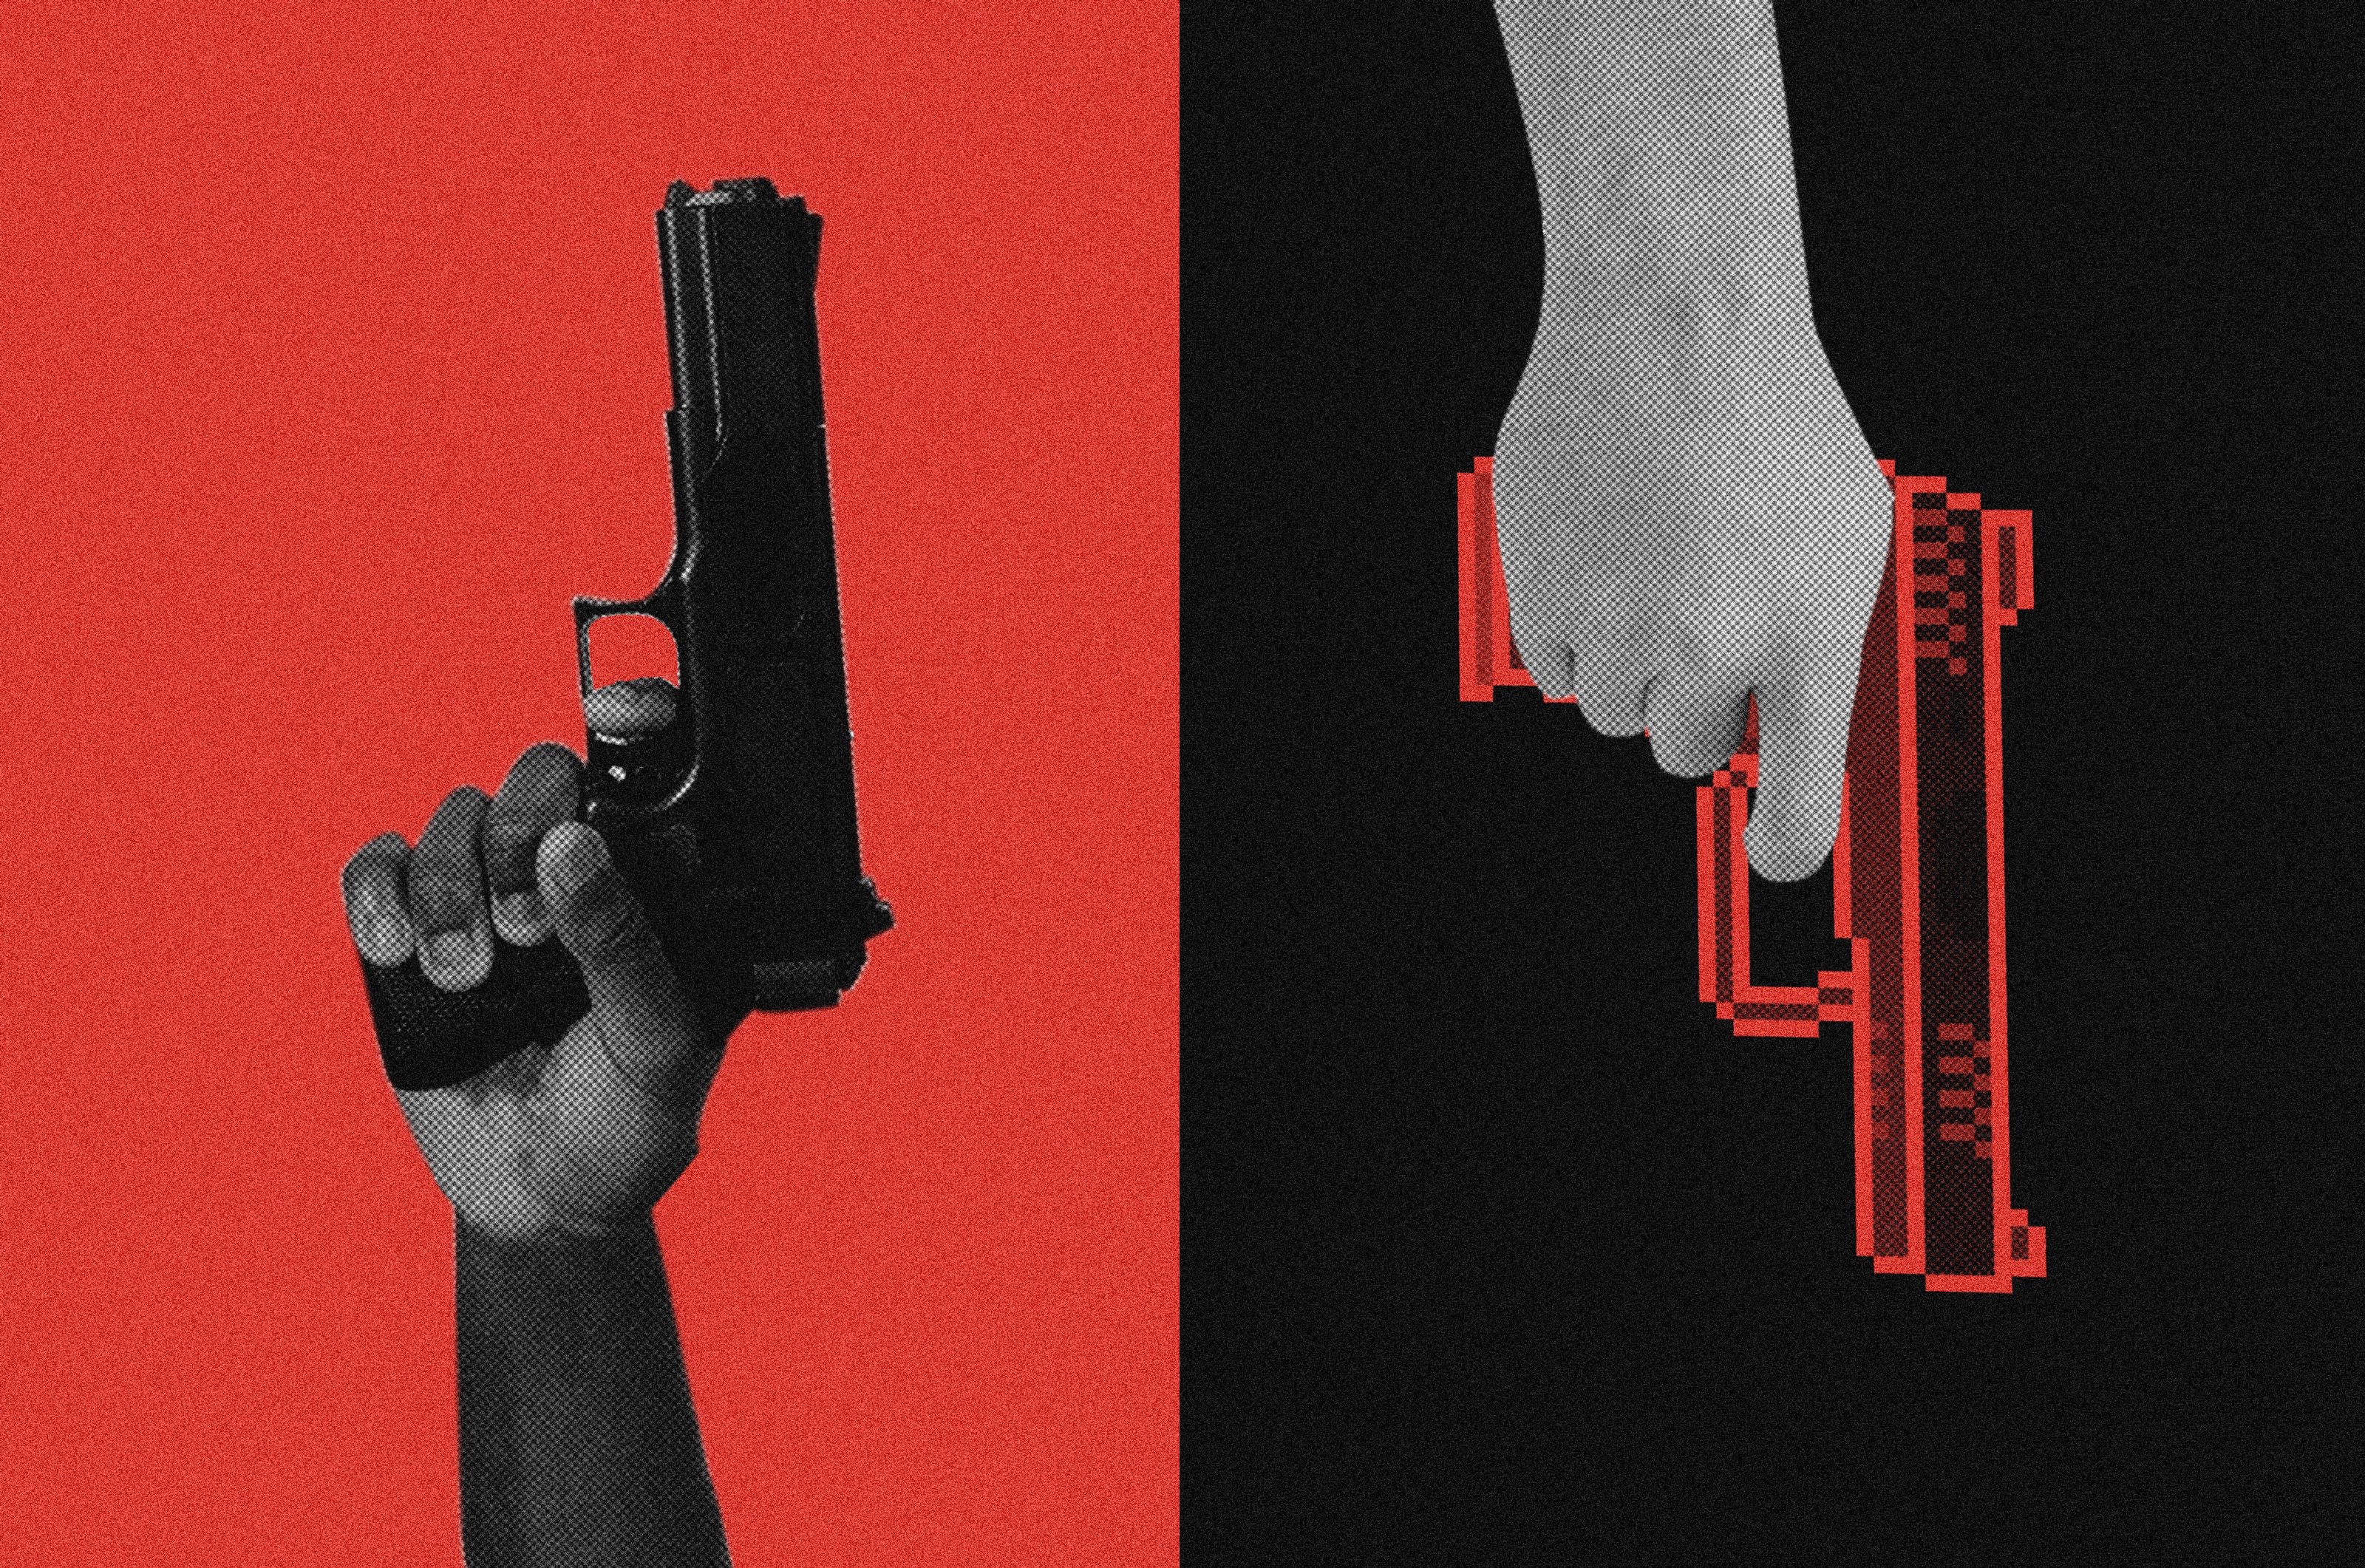 A black person's hand holding a gun pointed up on a red background next to a white hand pointing one down on black background